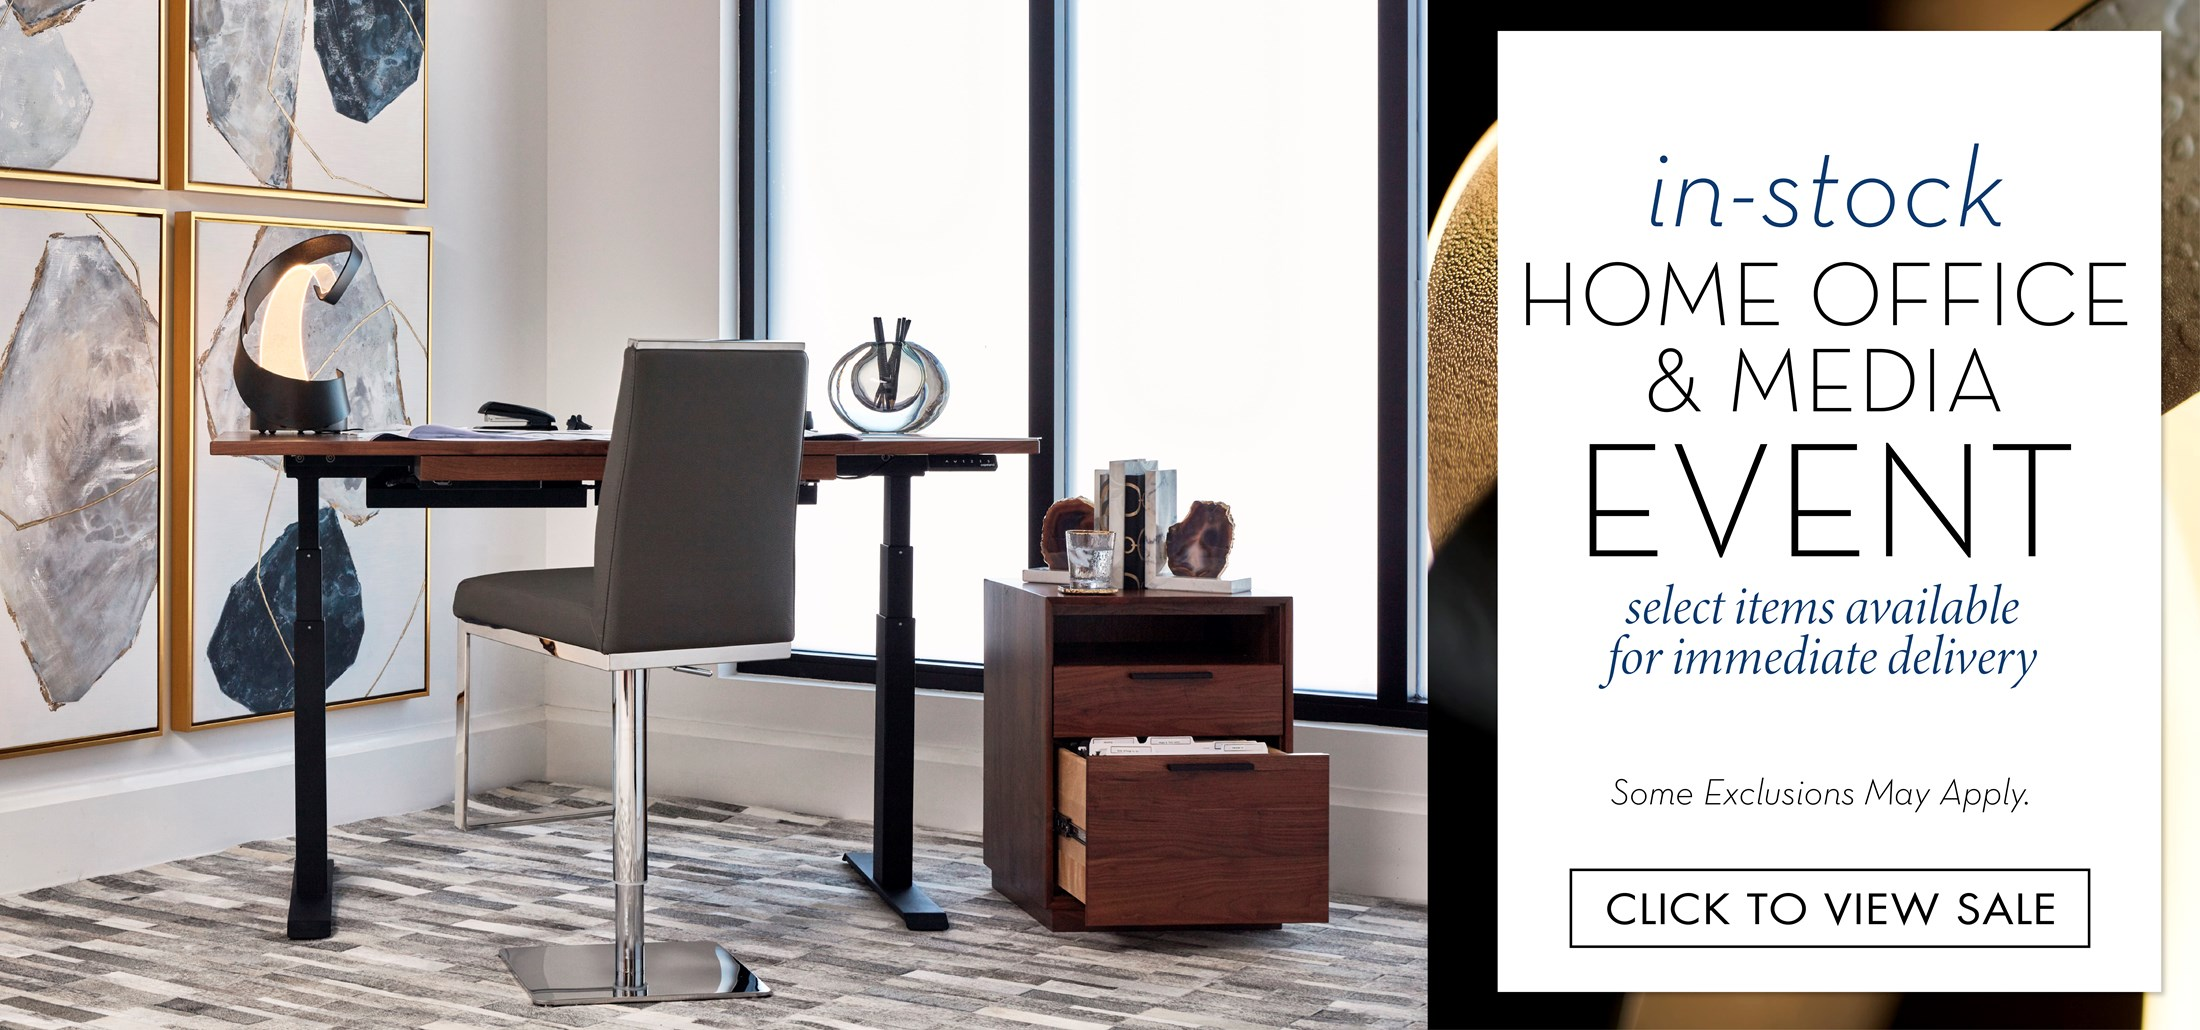 Image of a home office with a sit-stand desk. Text: In-Stock Home Office & Media Event. Select items available for immediate delivery. Some exclusions may apply. Click to view sale. Links to In-Stock Home Office & Media Event.